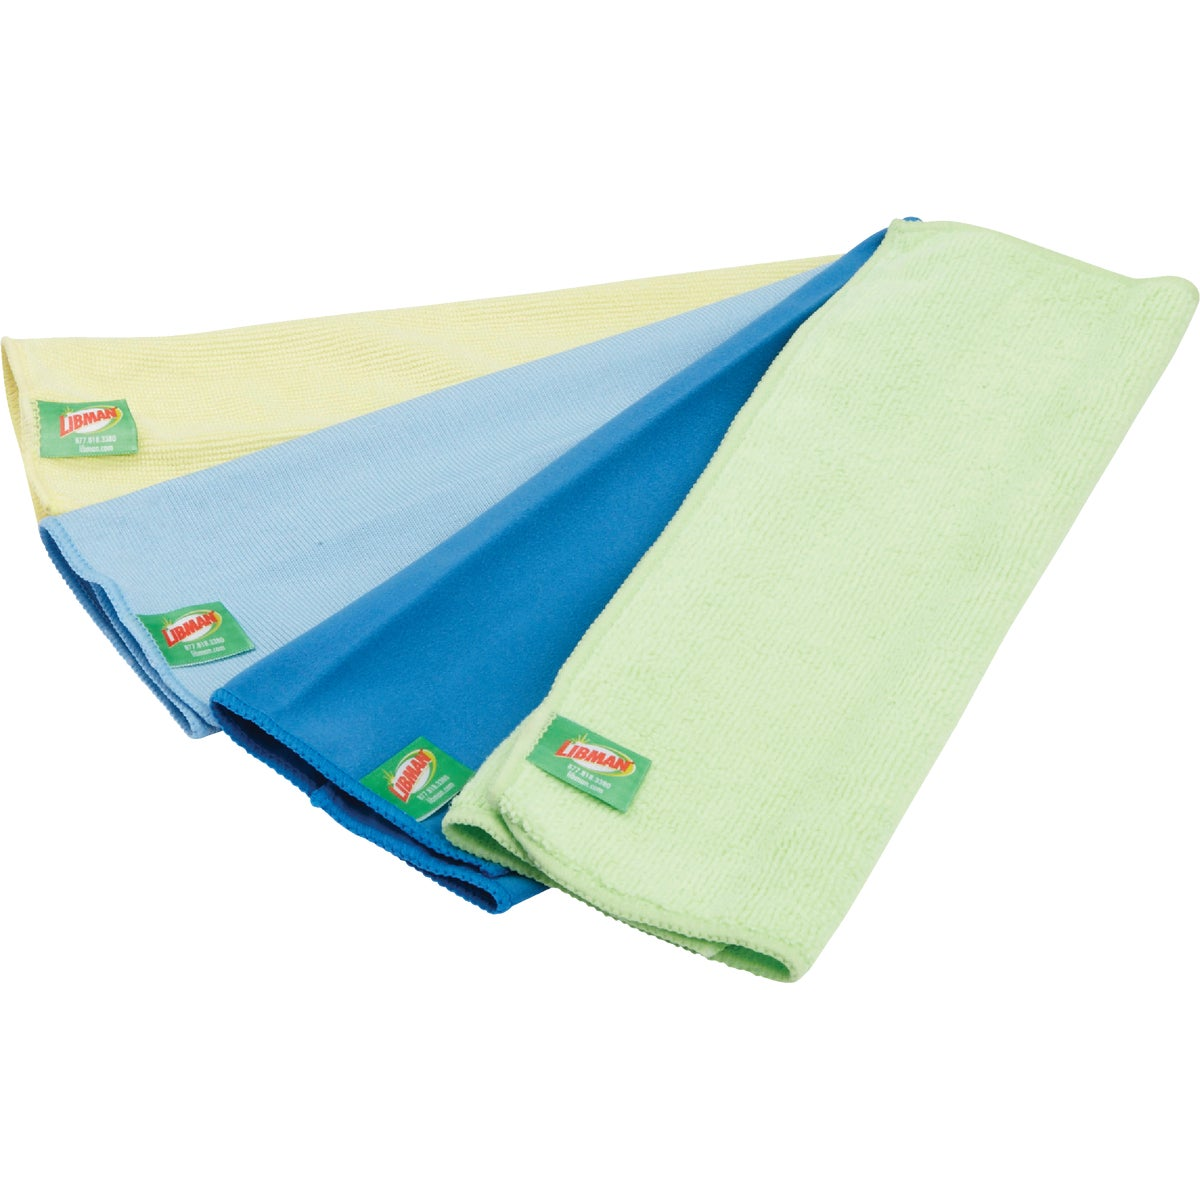 3PK ASTD MICROFIBR CLOTH - 138989 by F H P-lp